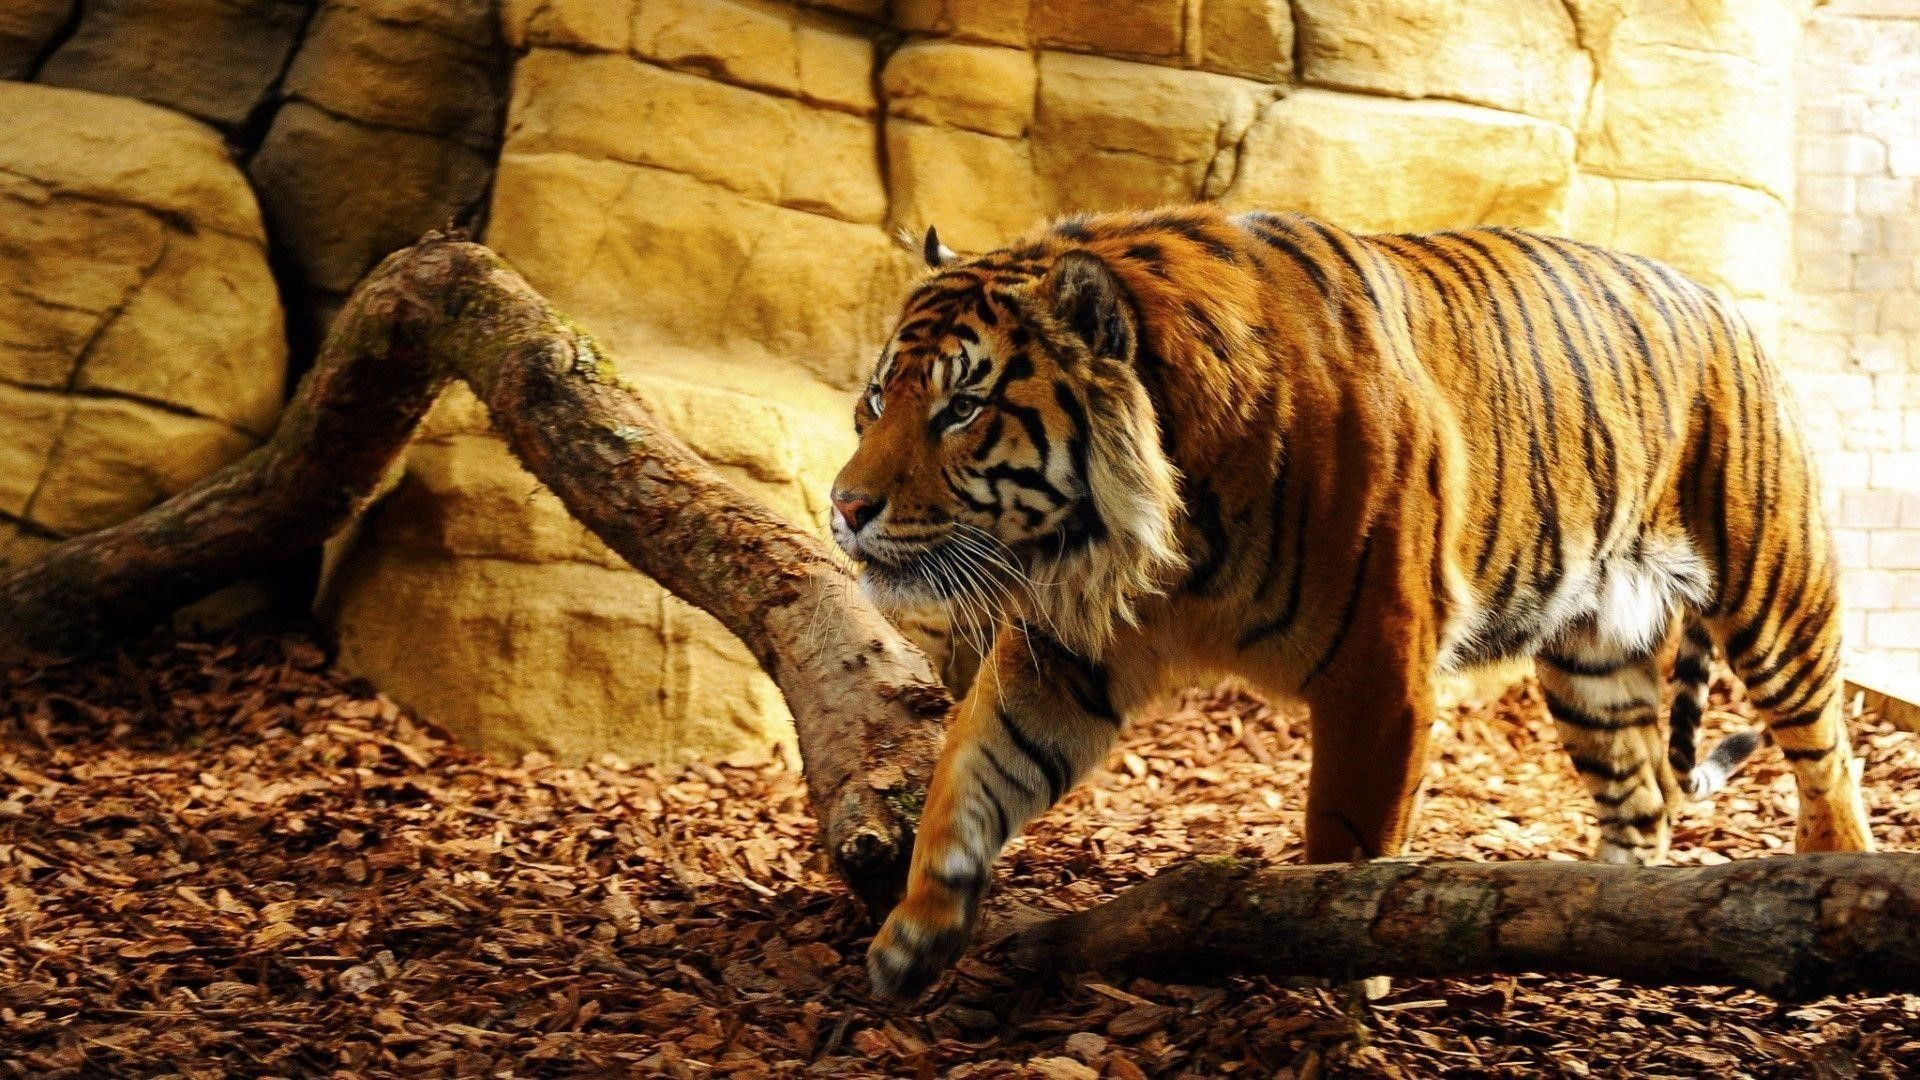 Pin by Brenda Mas on 4K Wallpapers in 2019 Tiger wallpaper 1920x1080